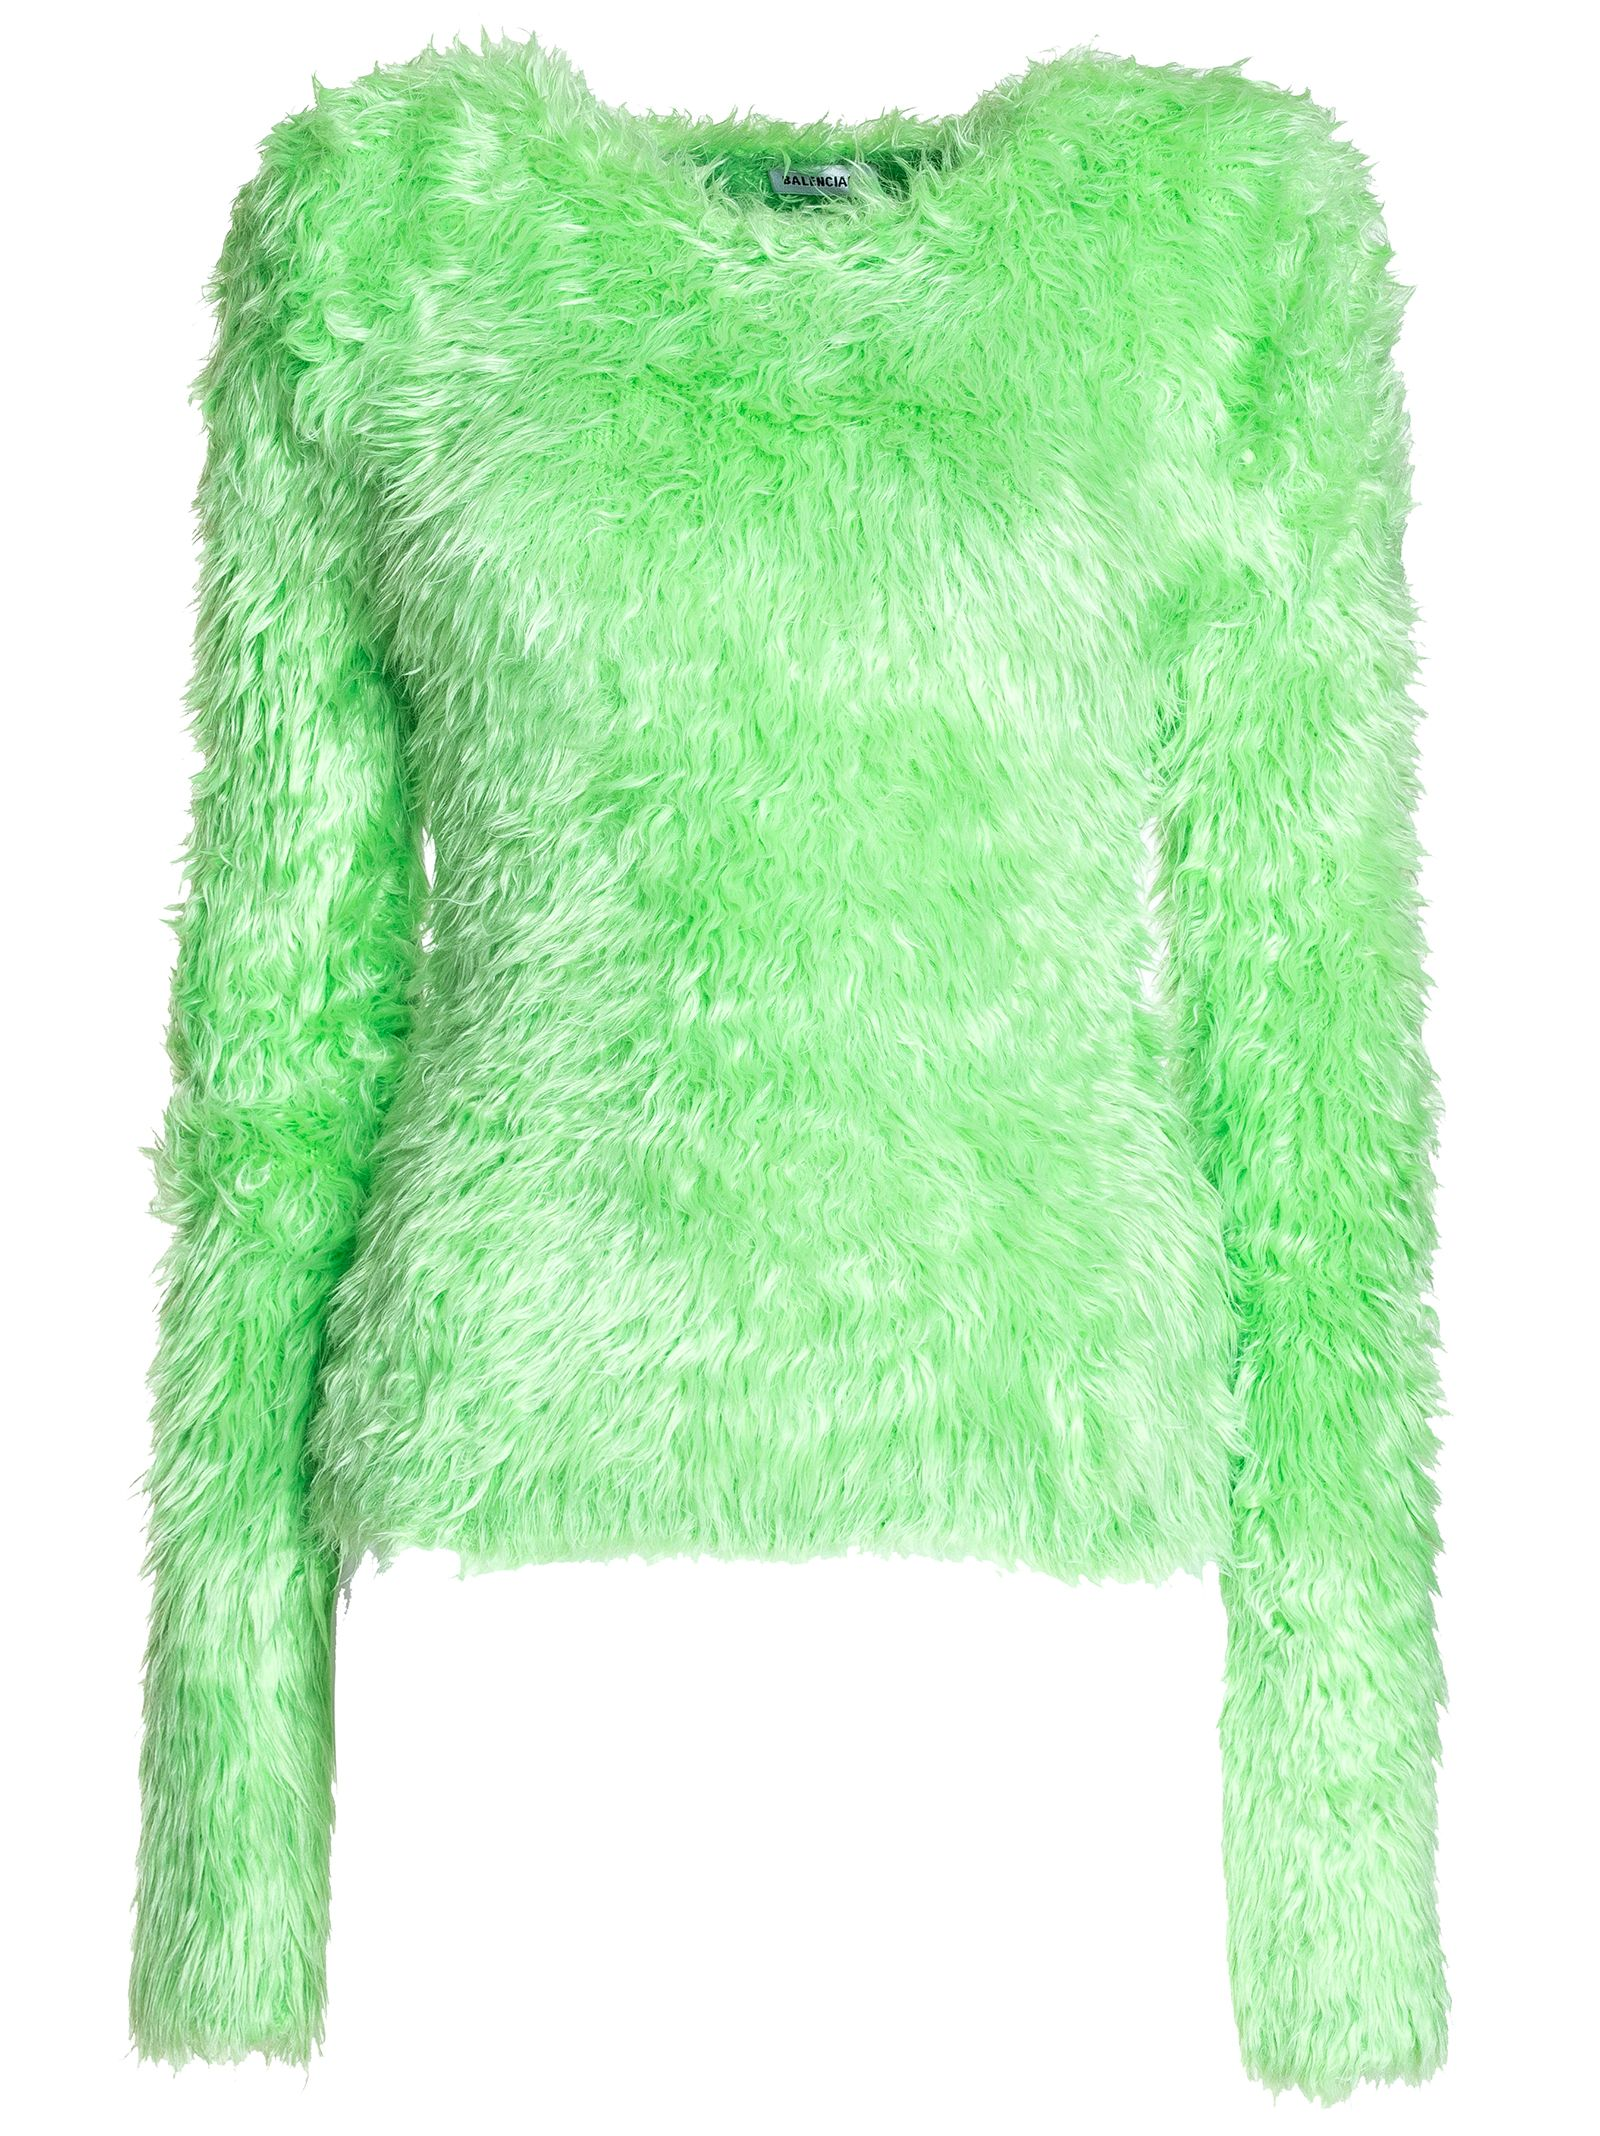 balenciaga -  Crewneck Sweater In Neon Green Fluffly Knit